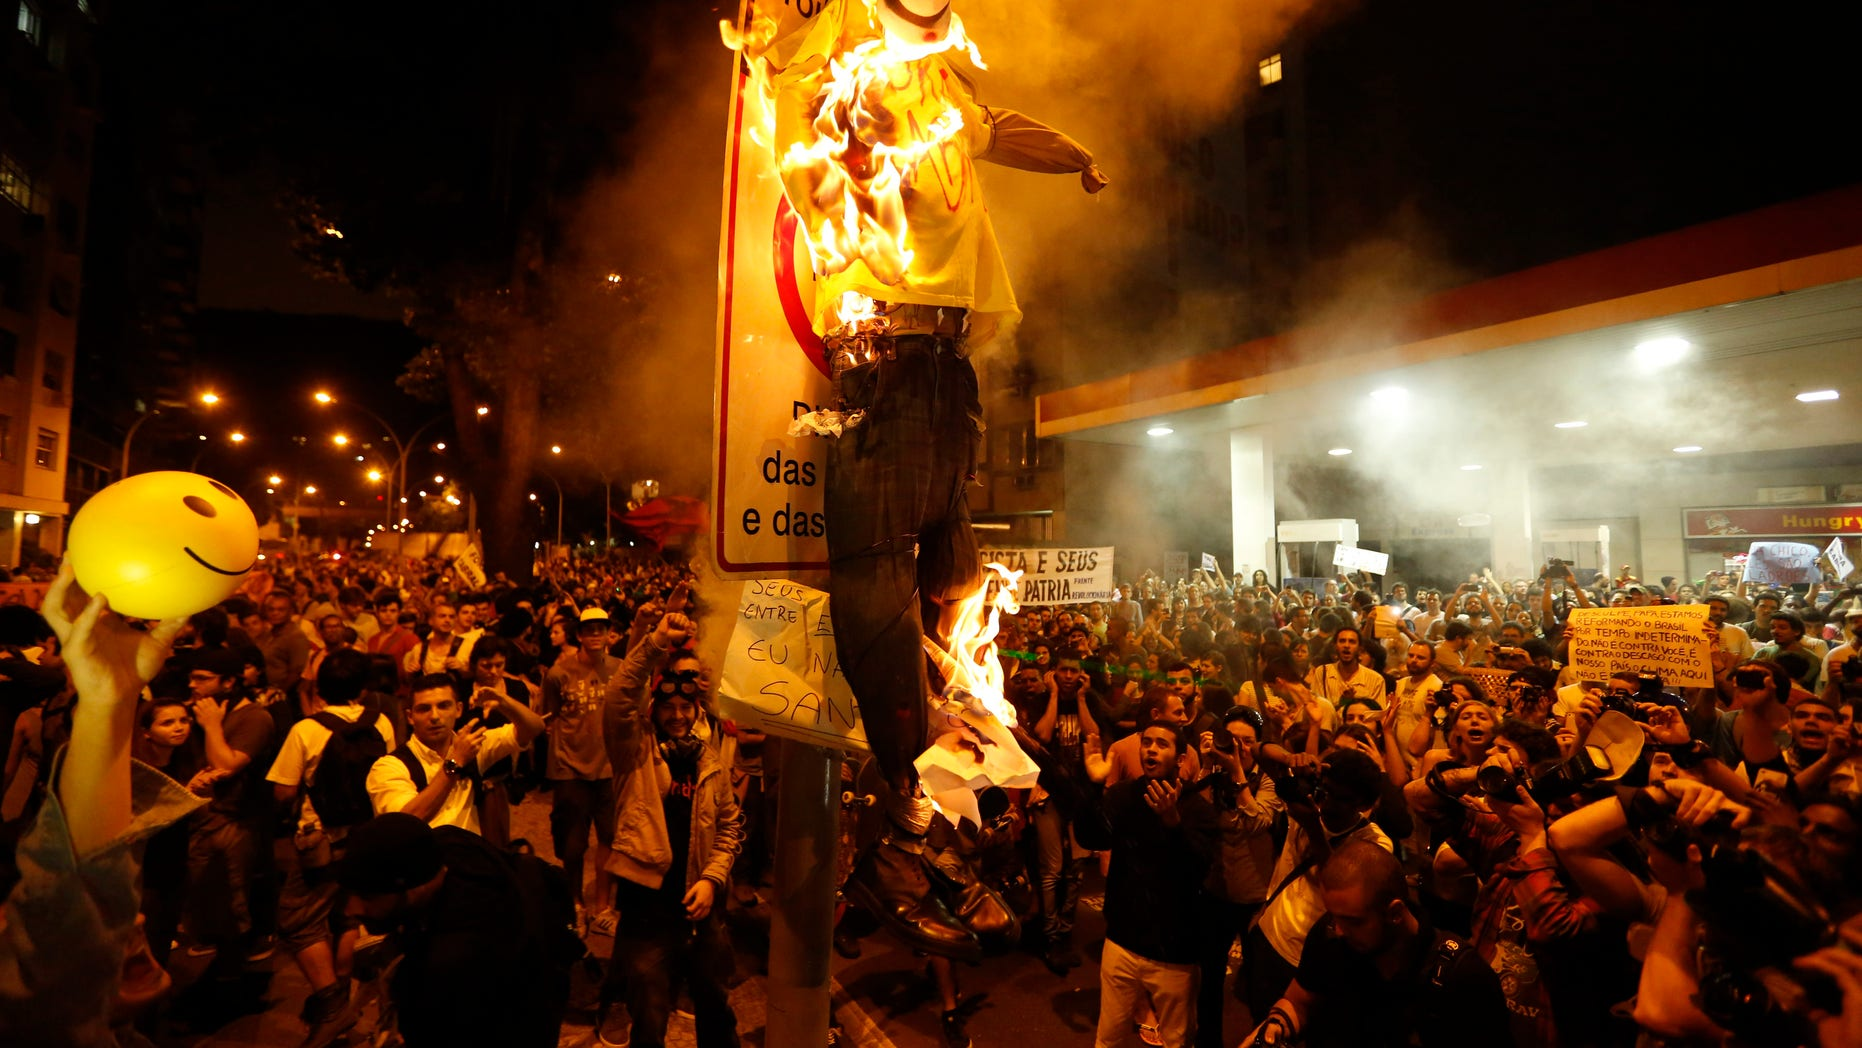 Protesters burn a puppet that symbolizes Rio de Janeiro State Governor Sergio Cabral during a demonstration near Guanabara Palace in Rio de Janeiro, Brazil, Monday, July 22, 2013.